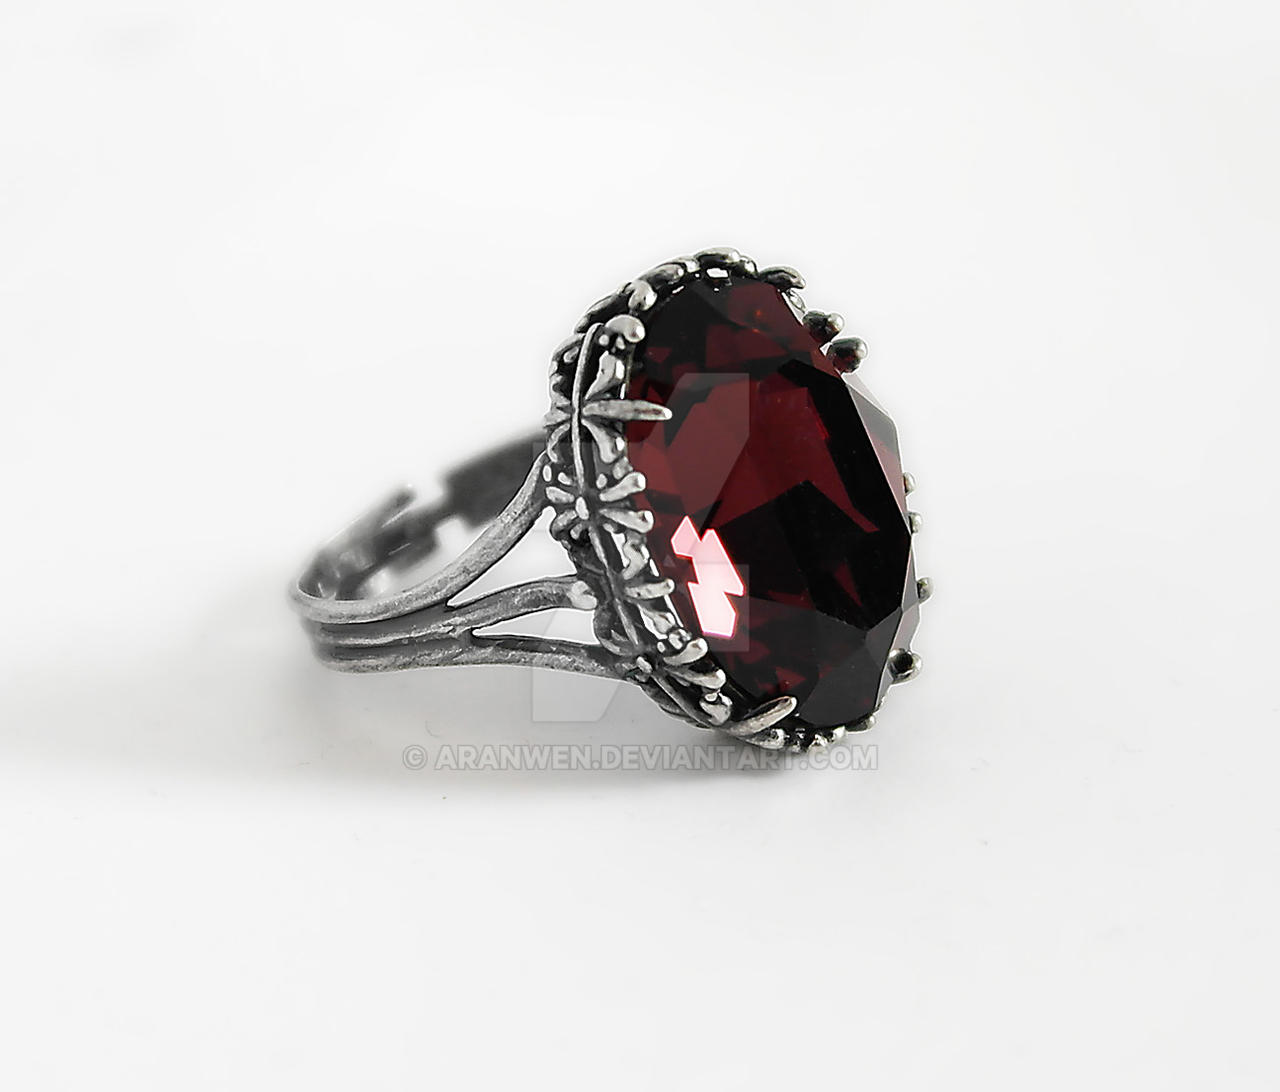 Dark Silver Ring in Burgundy by Aranwen